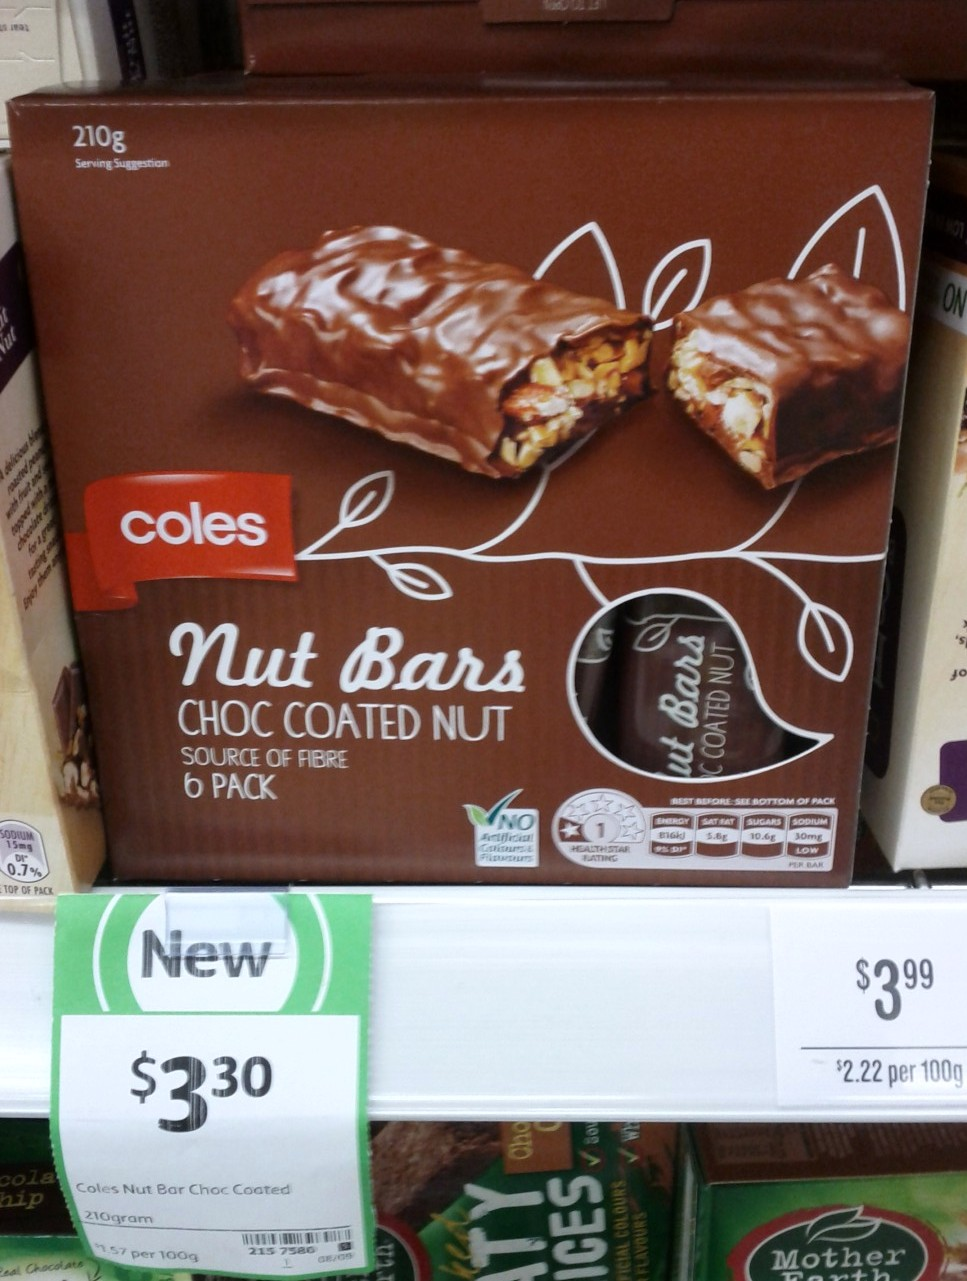 Coles Nut Bars 210g Choc Coated Nut